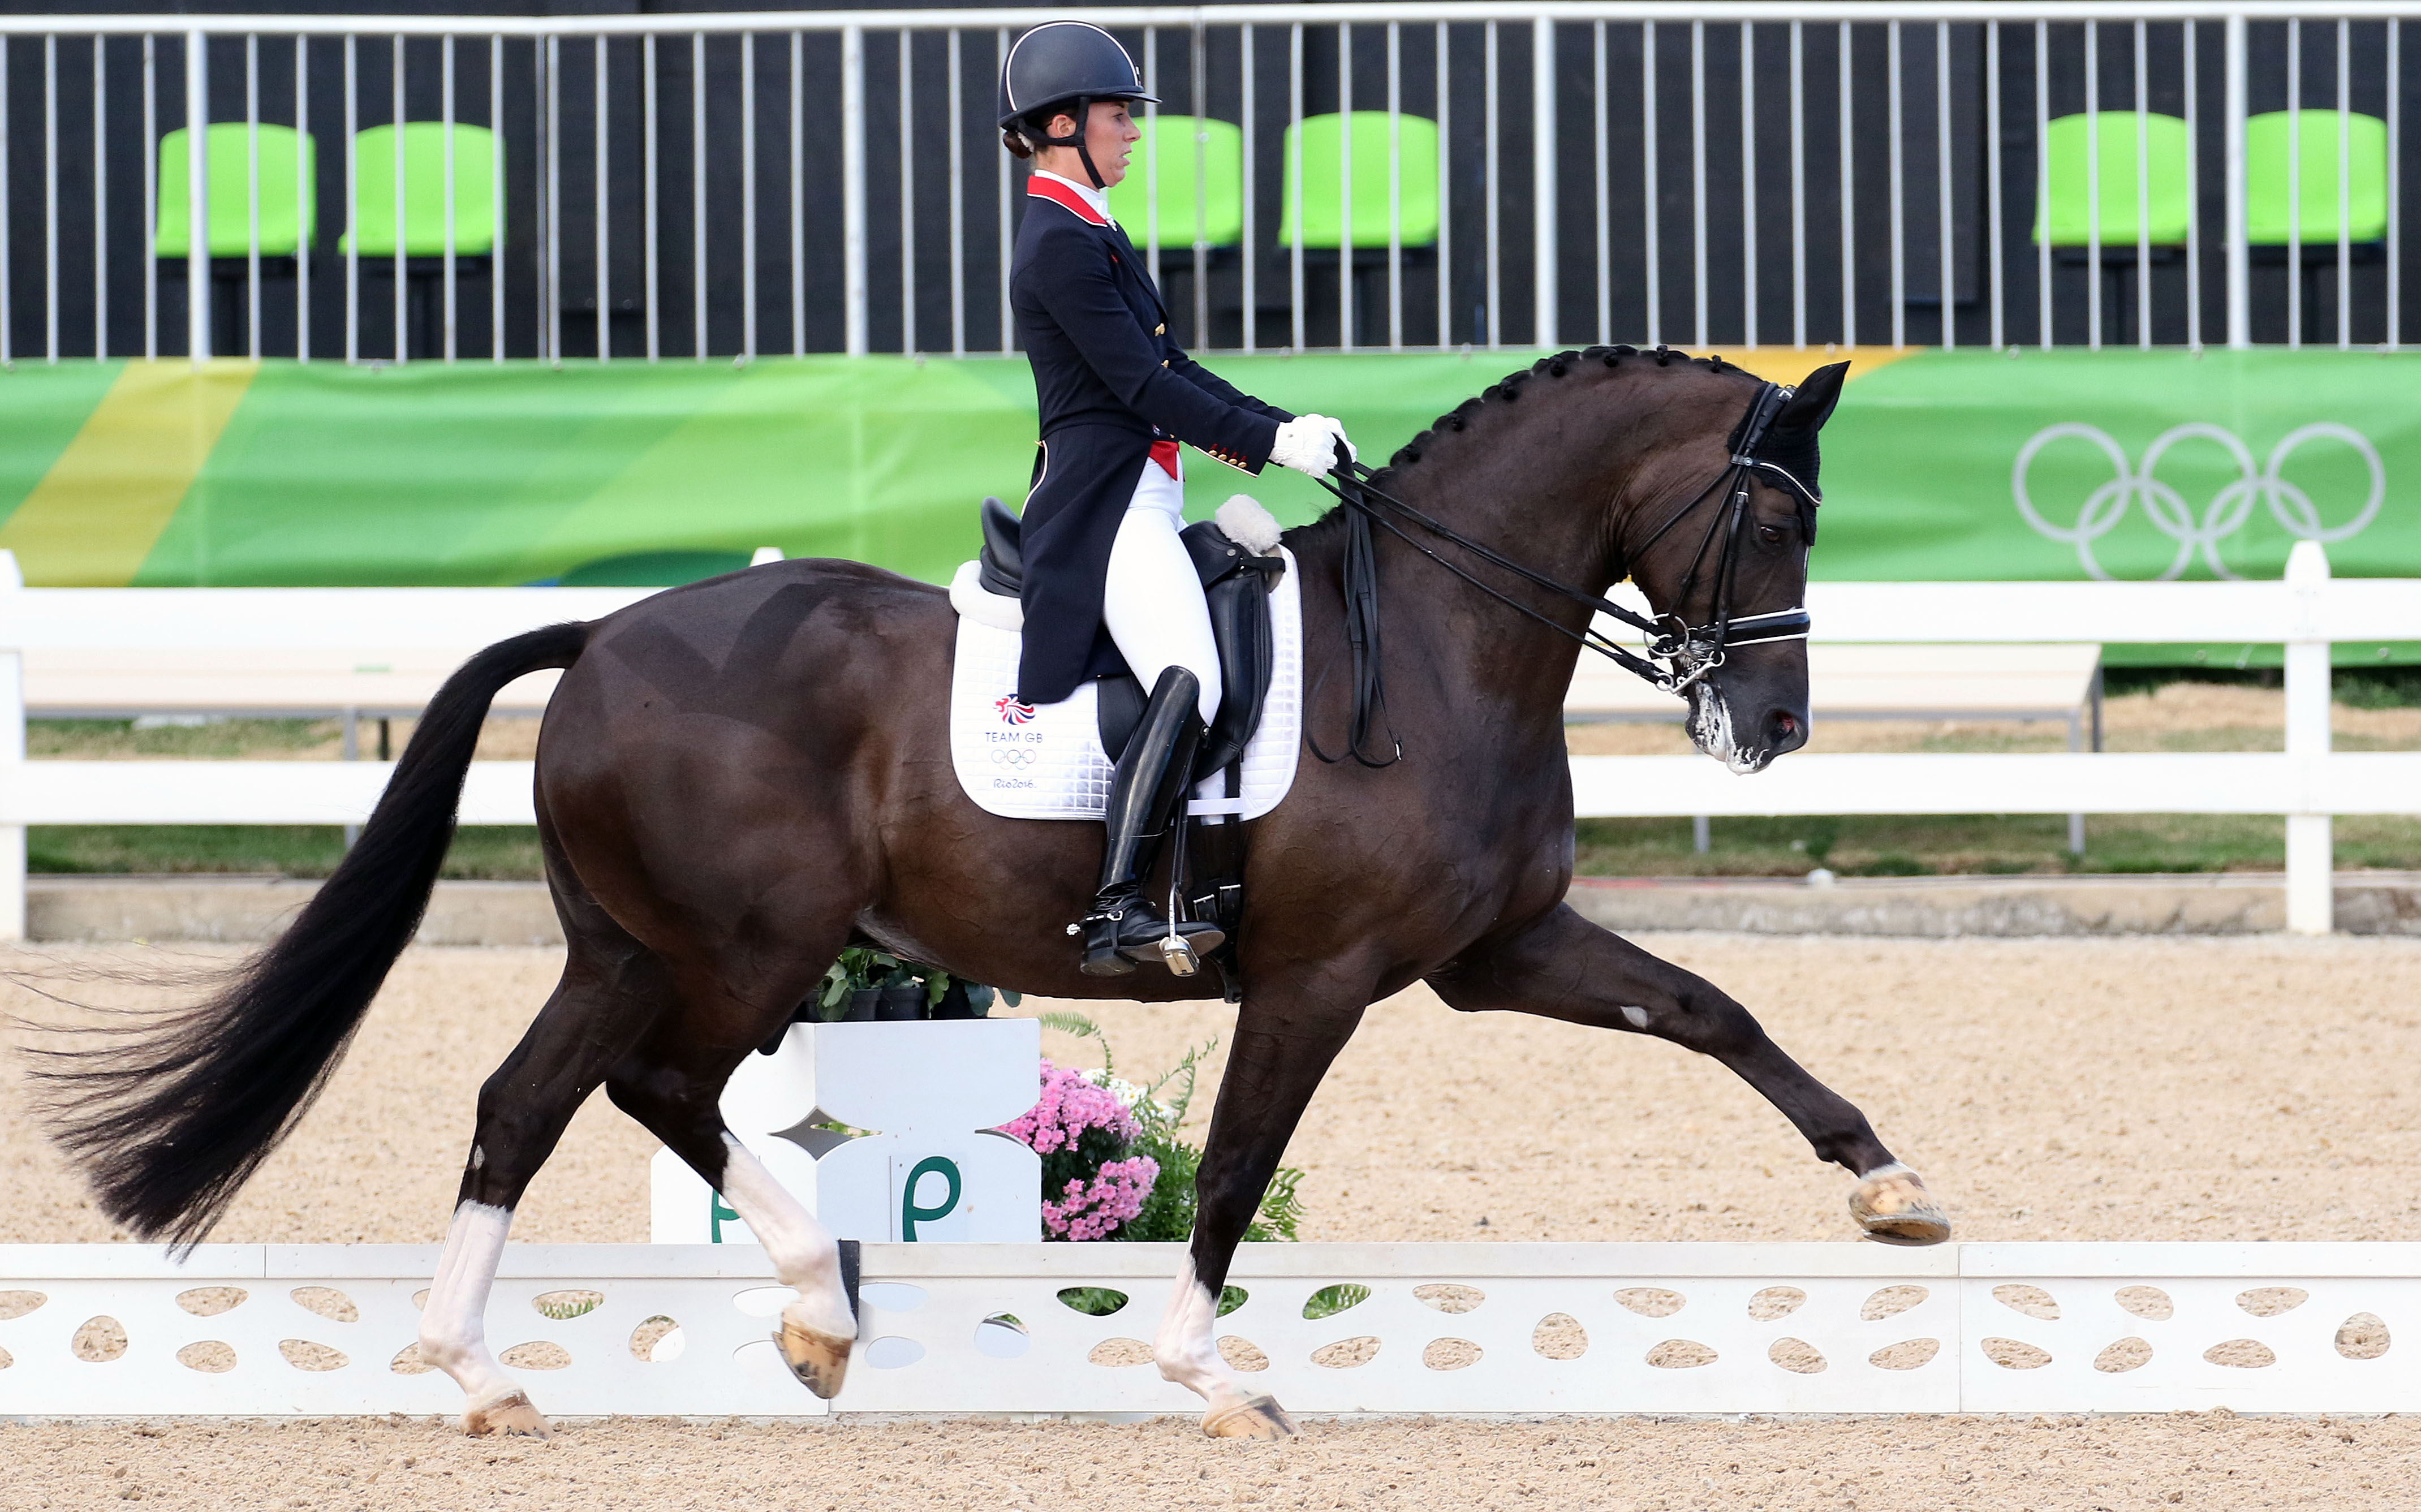 Charlotte Dujardin and Valegro are so talented to recover from a dramatic loss of points in the Grand Prix Special. © 2016 Ken Braddick/dressage-news.com